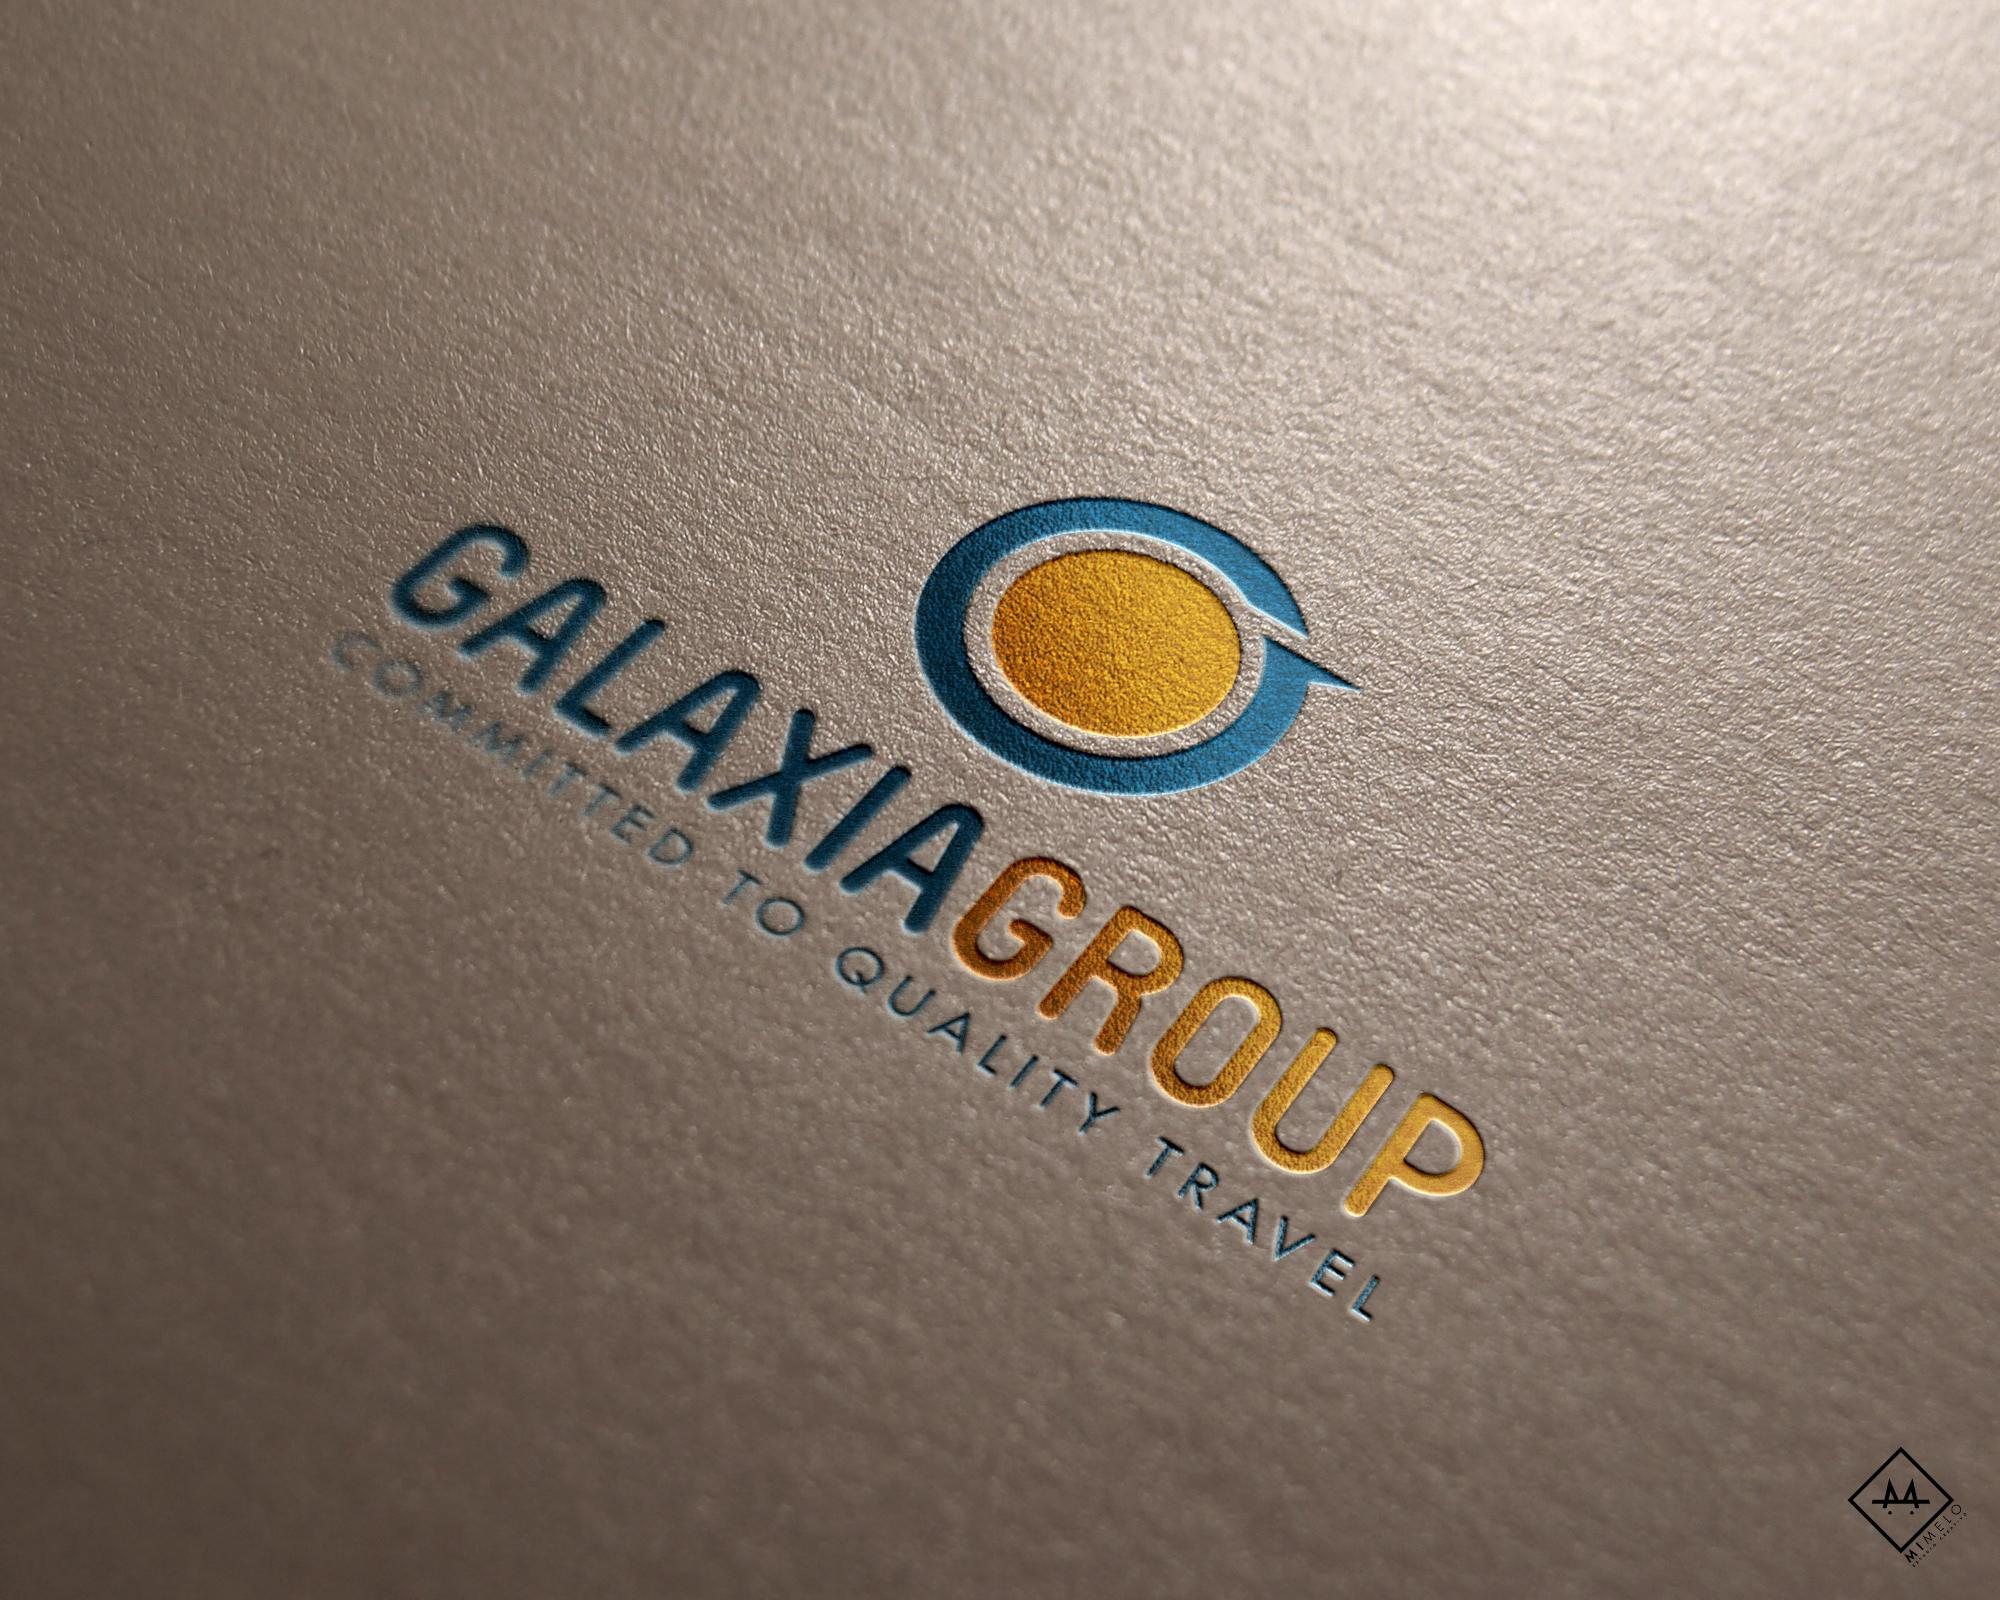 Galaxia Group - Mimelo Estudio Creativo